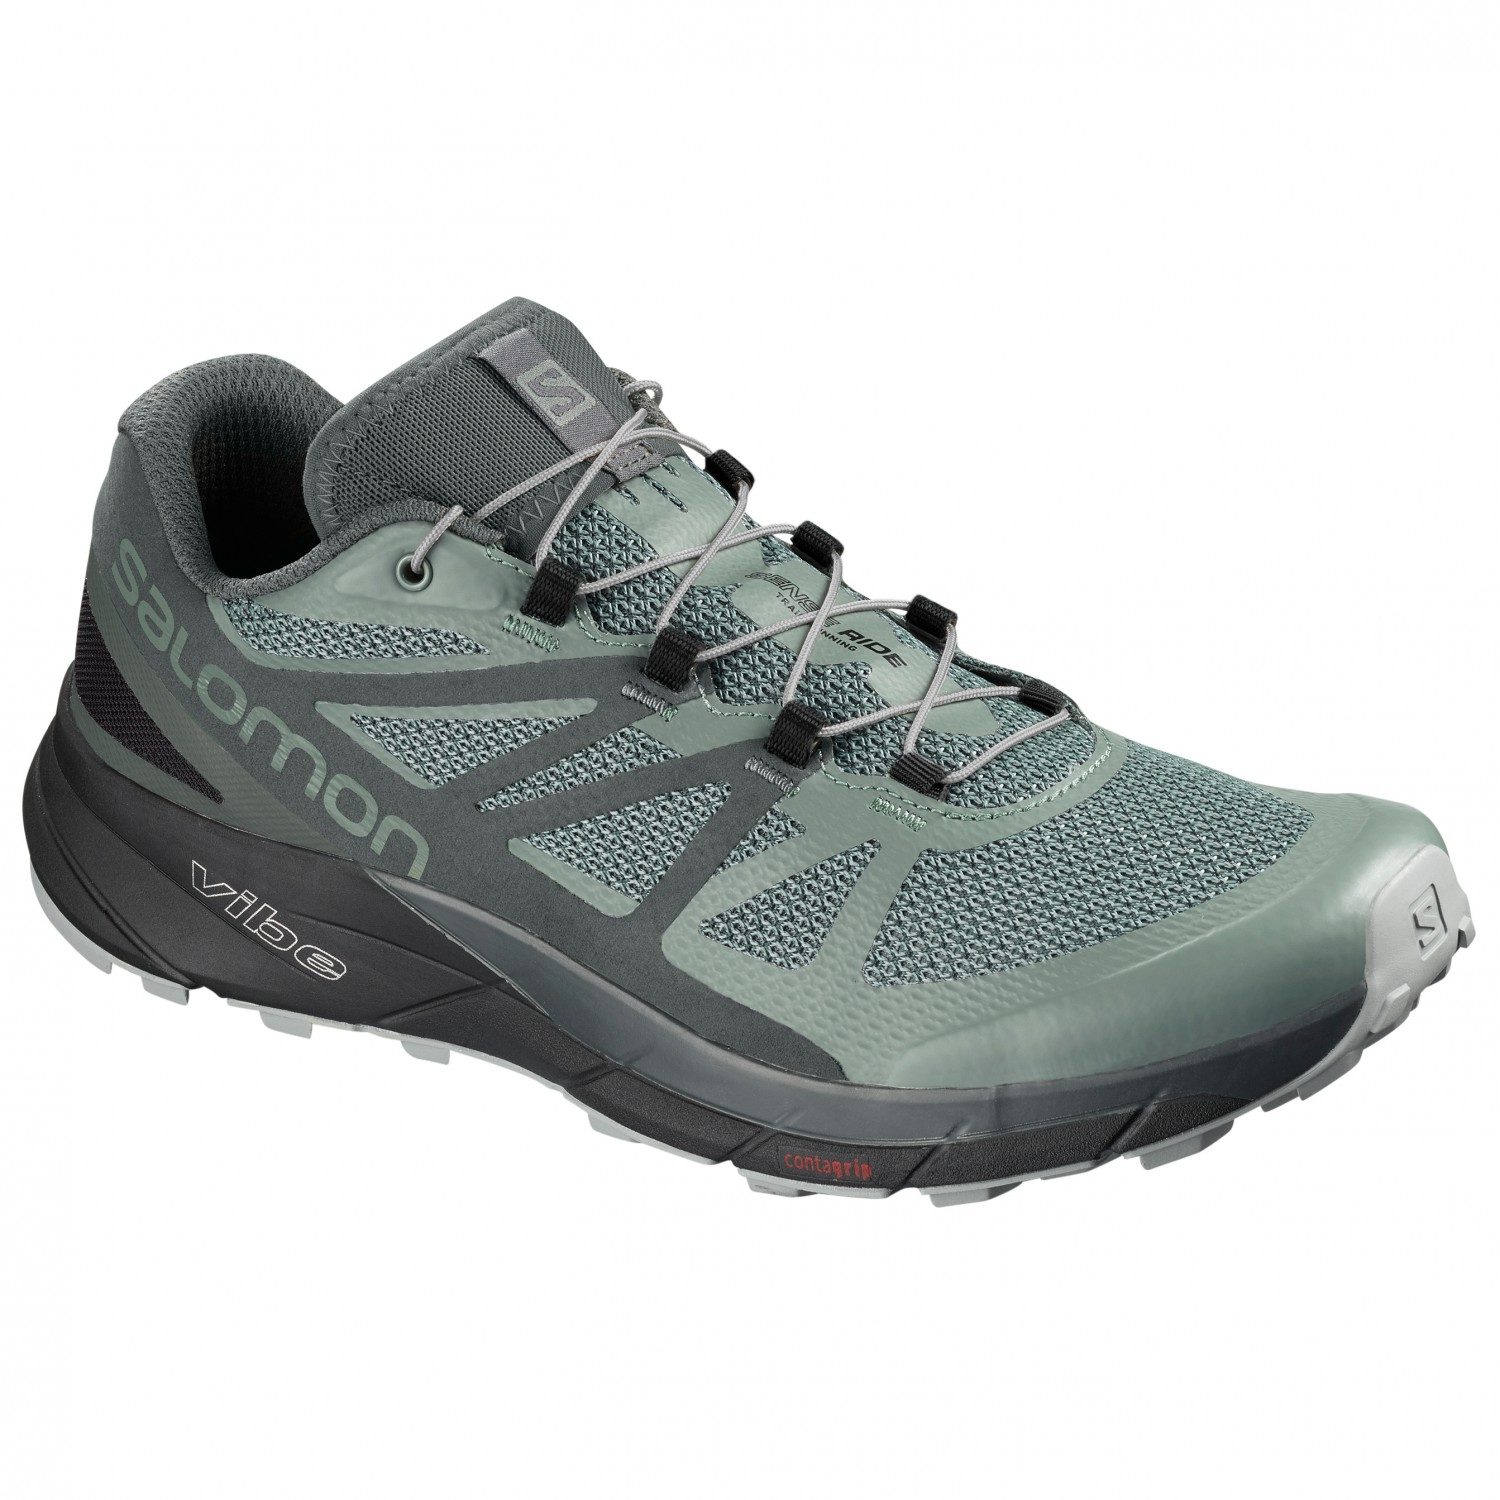 Salomon Winter Running Shoes Canada